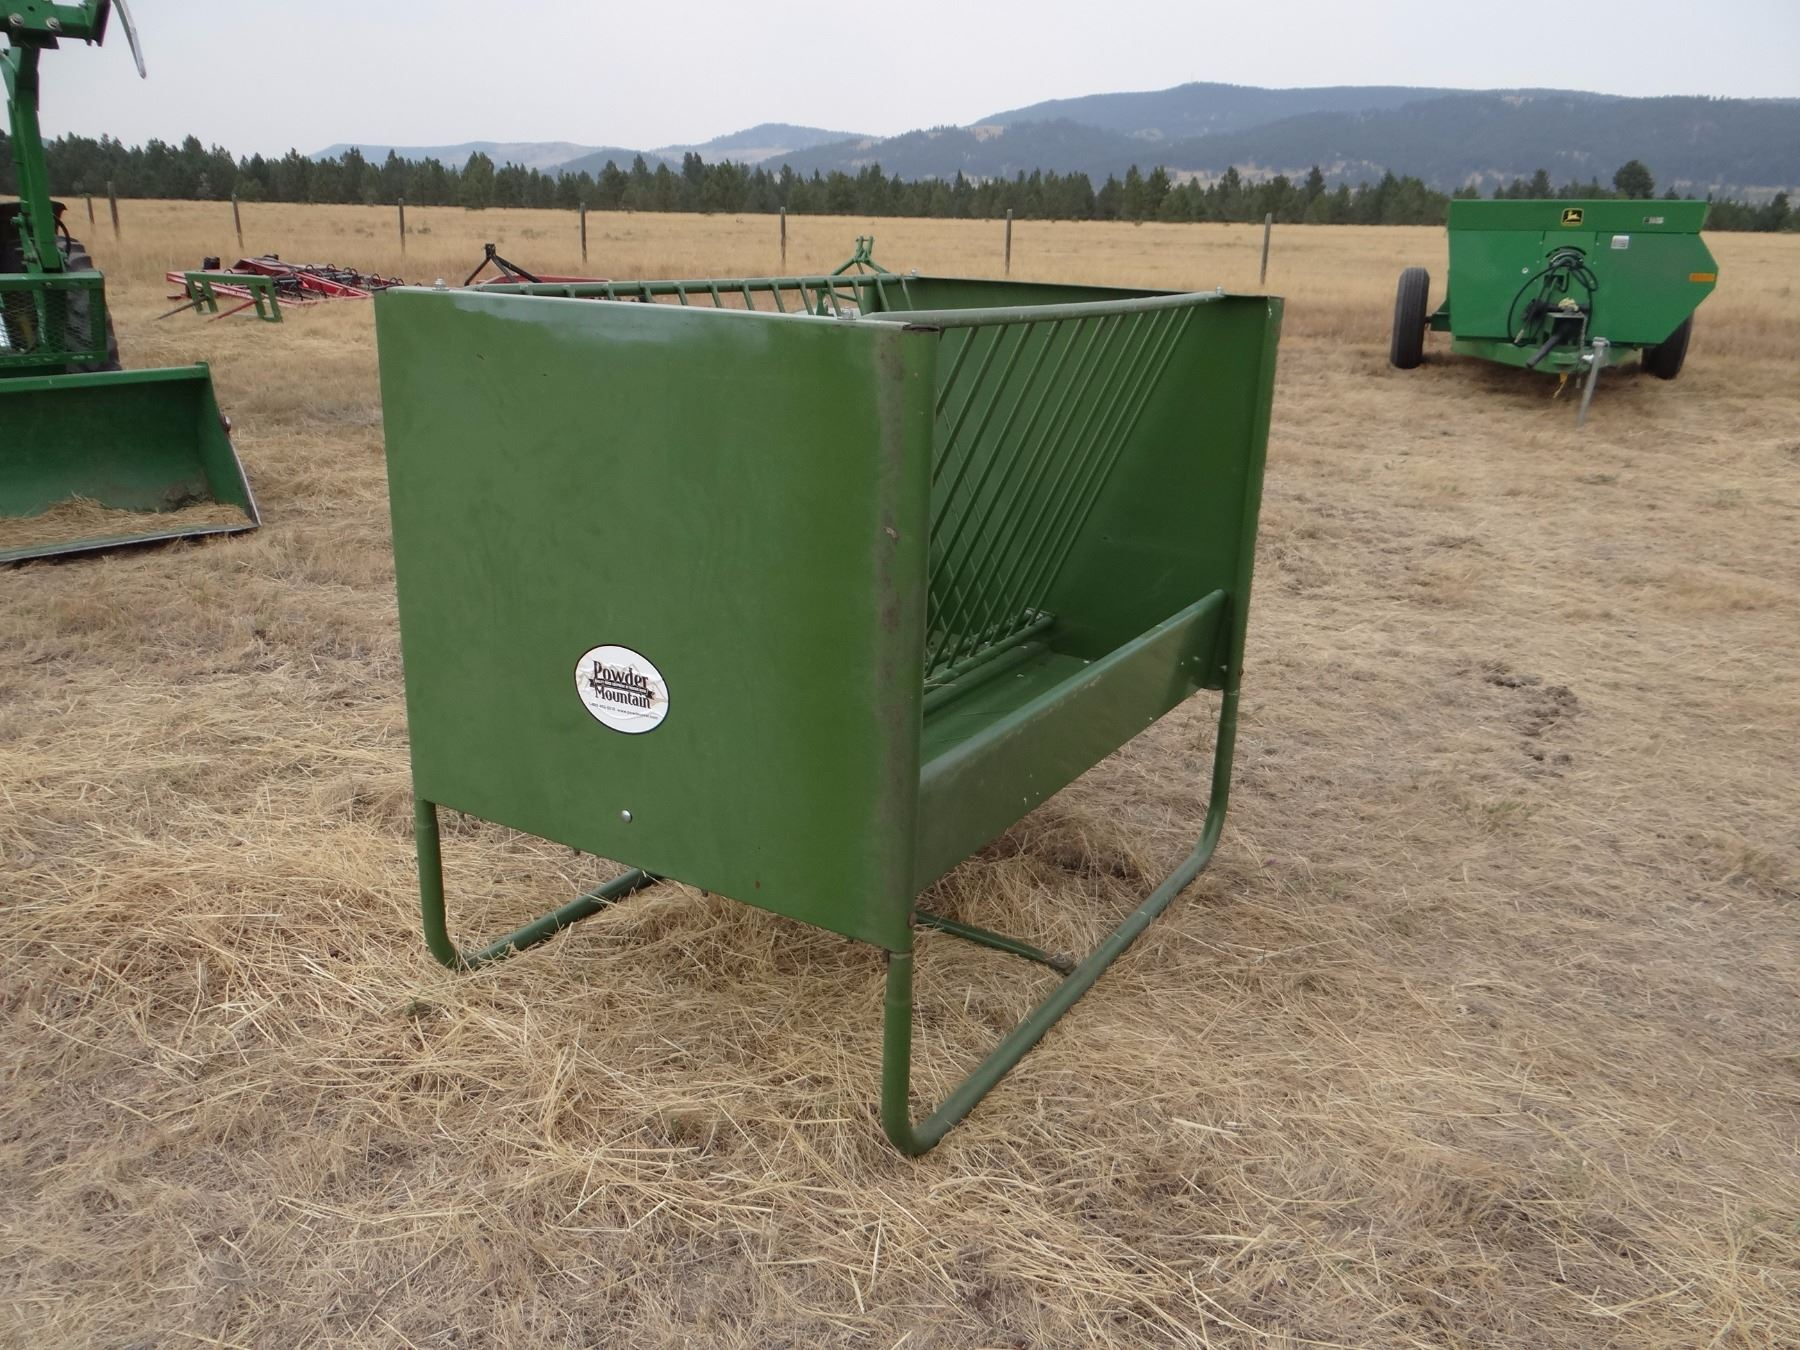 supplies graze the fairfield horse hay saver foal feeder ltd eating mare from